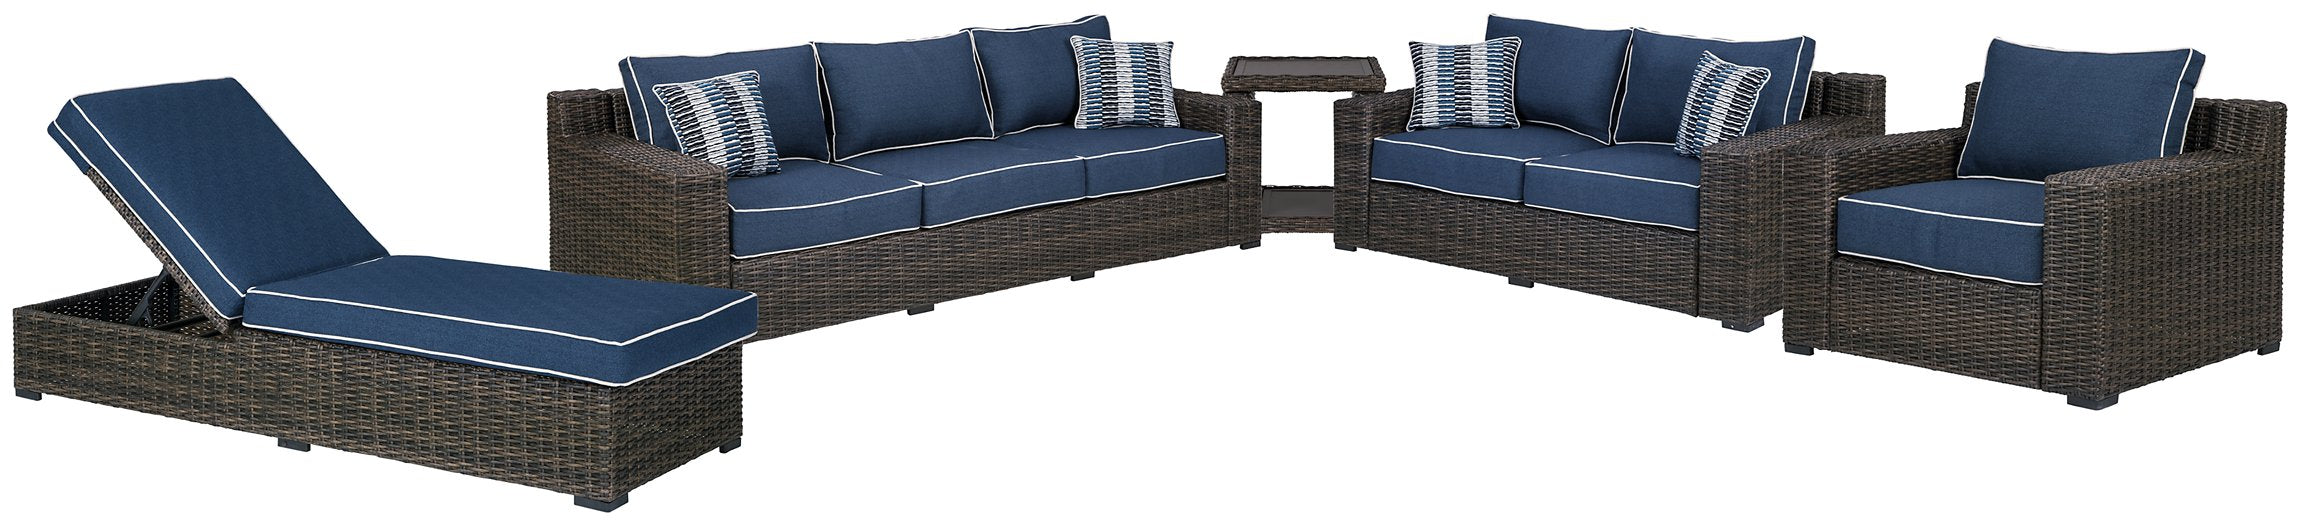 Grasson Lane Signature Design By Ashley 5-Piece Outdoor Sofa and Loveseat with Lounge Chairs and End Table